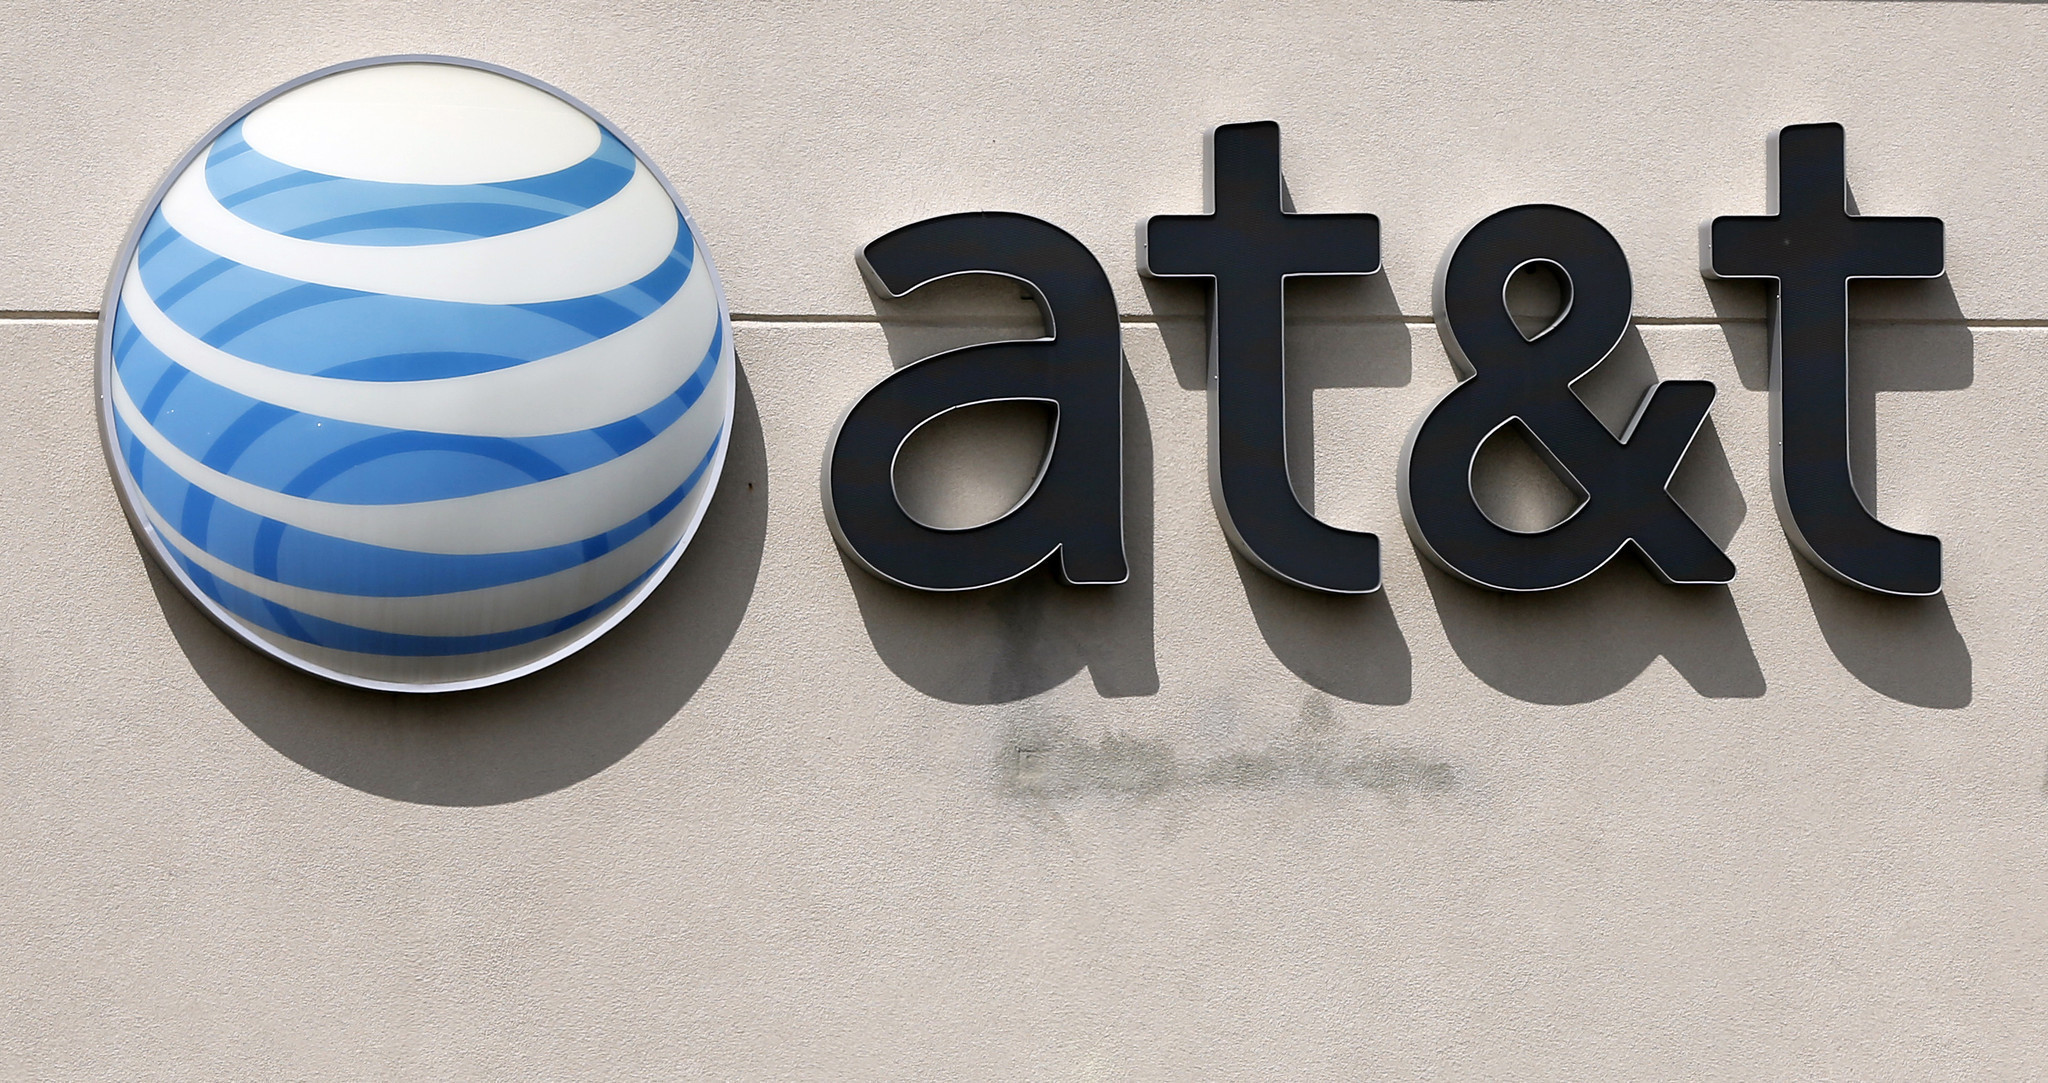 AT&T hit with $100M fine for its 'unlimited' data plans